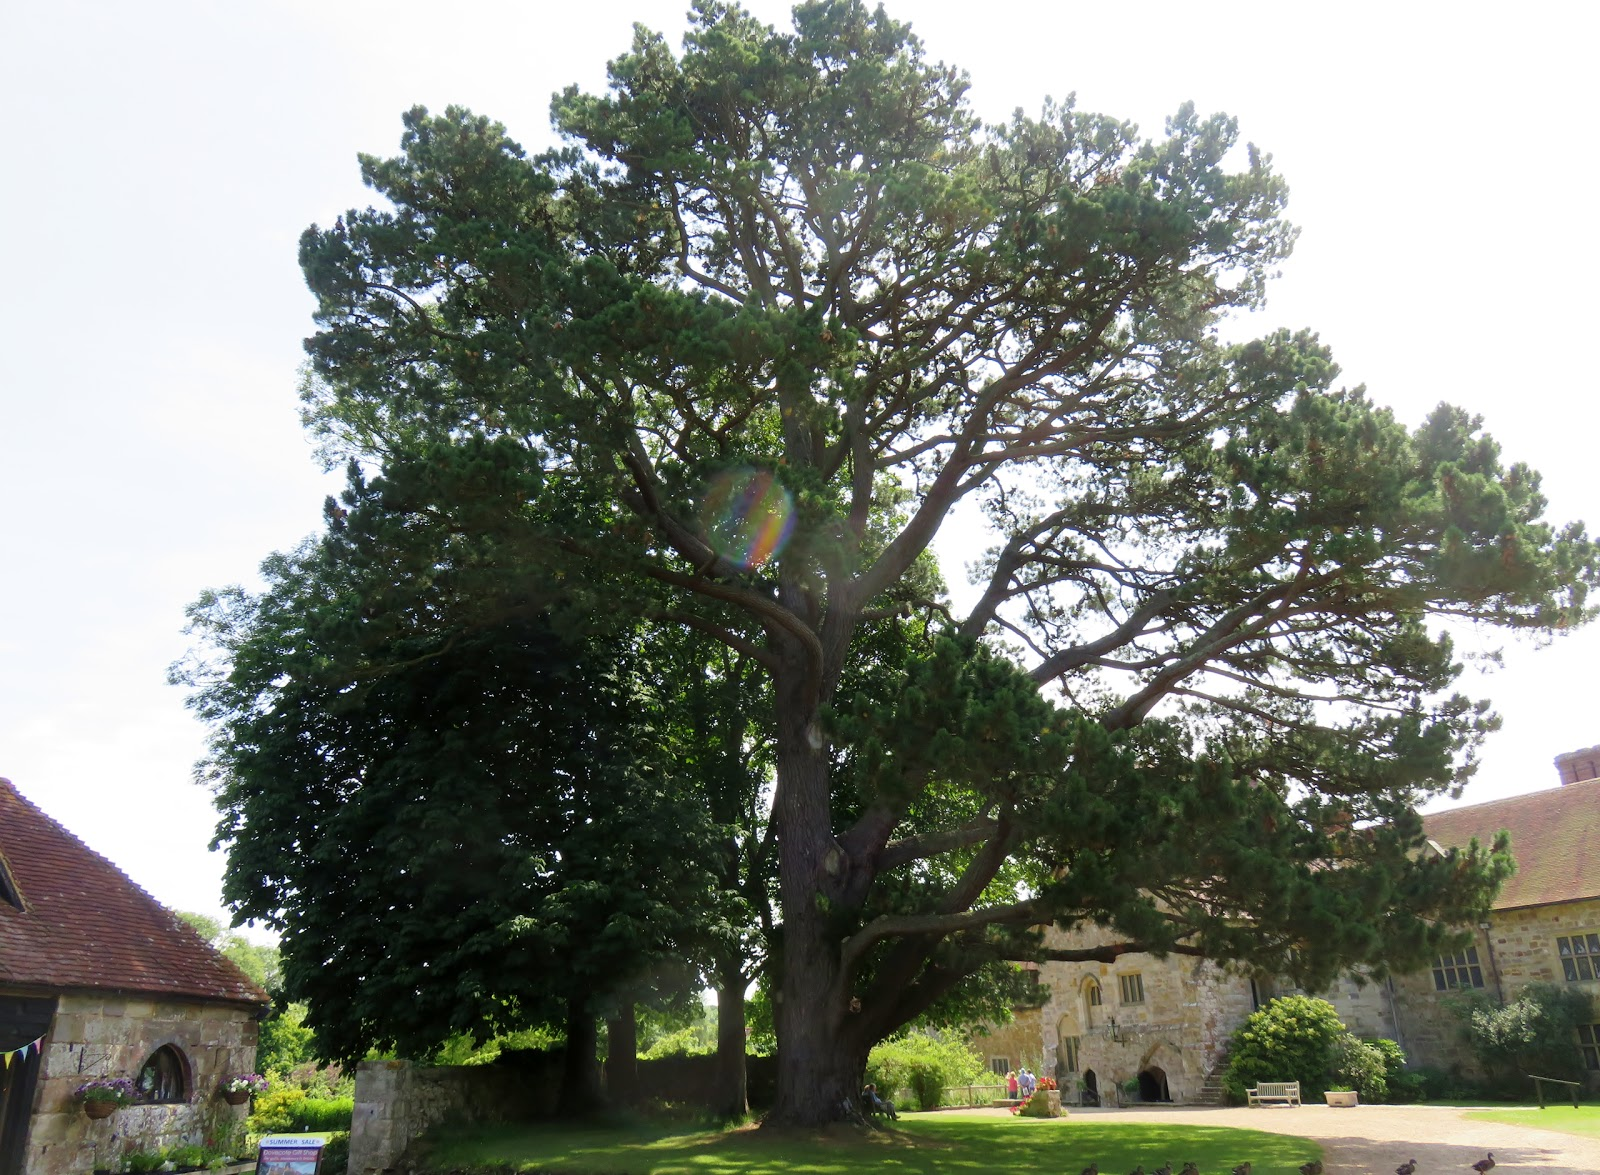 Michelham Priory – a peaceful day out